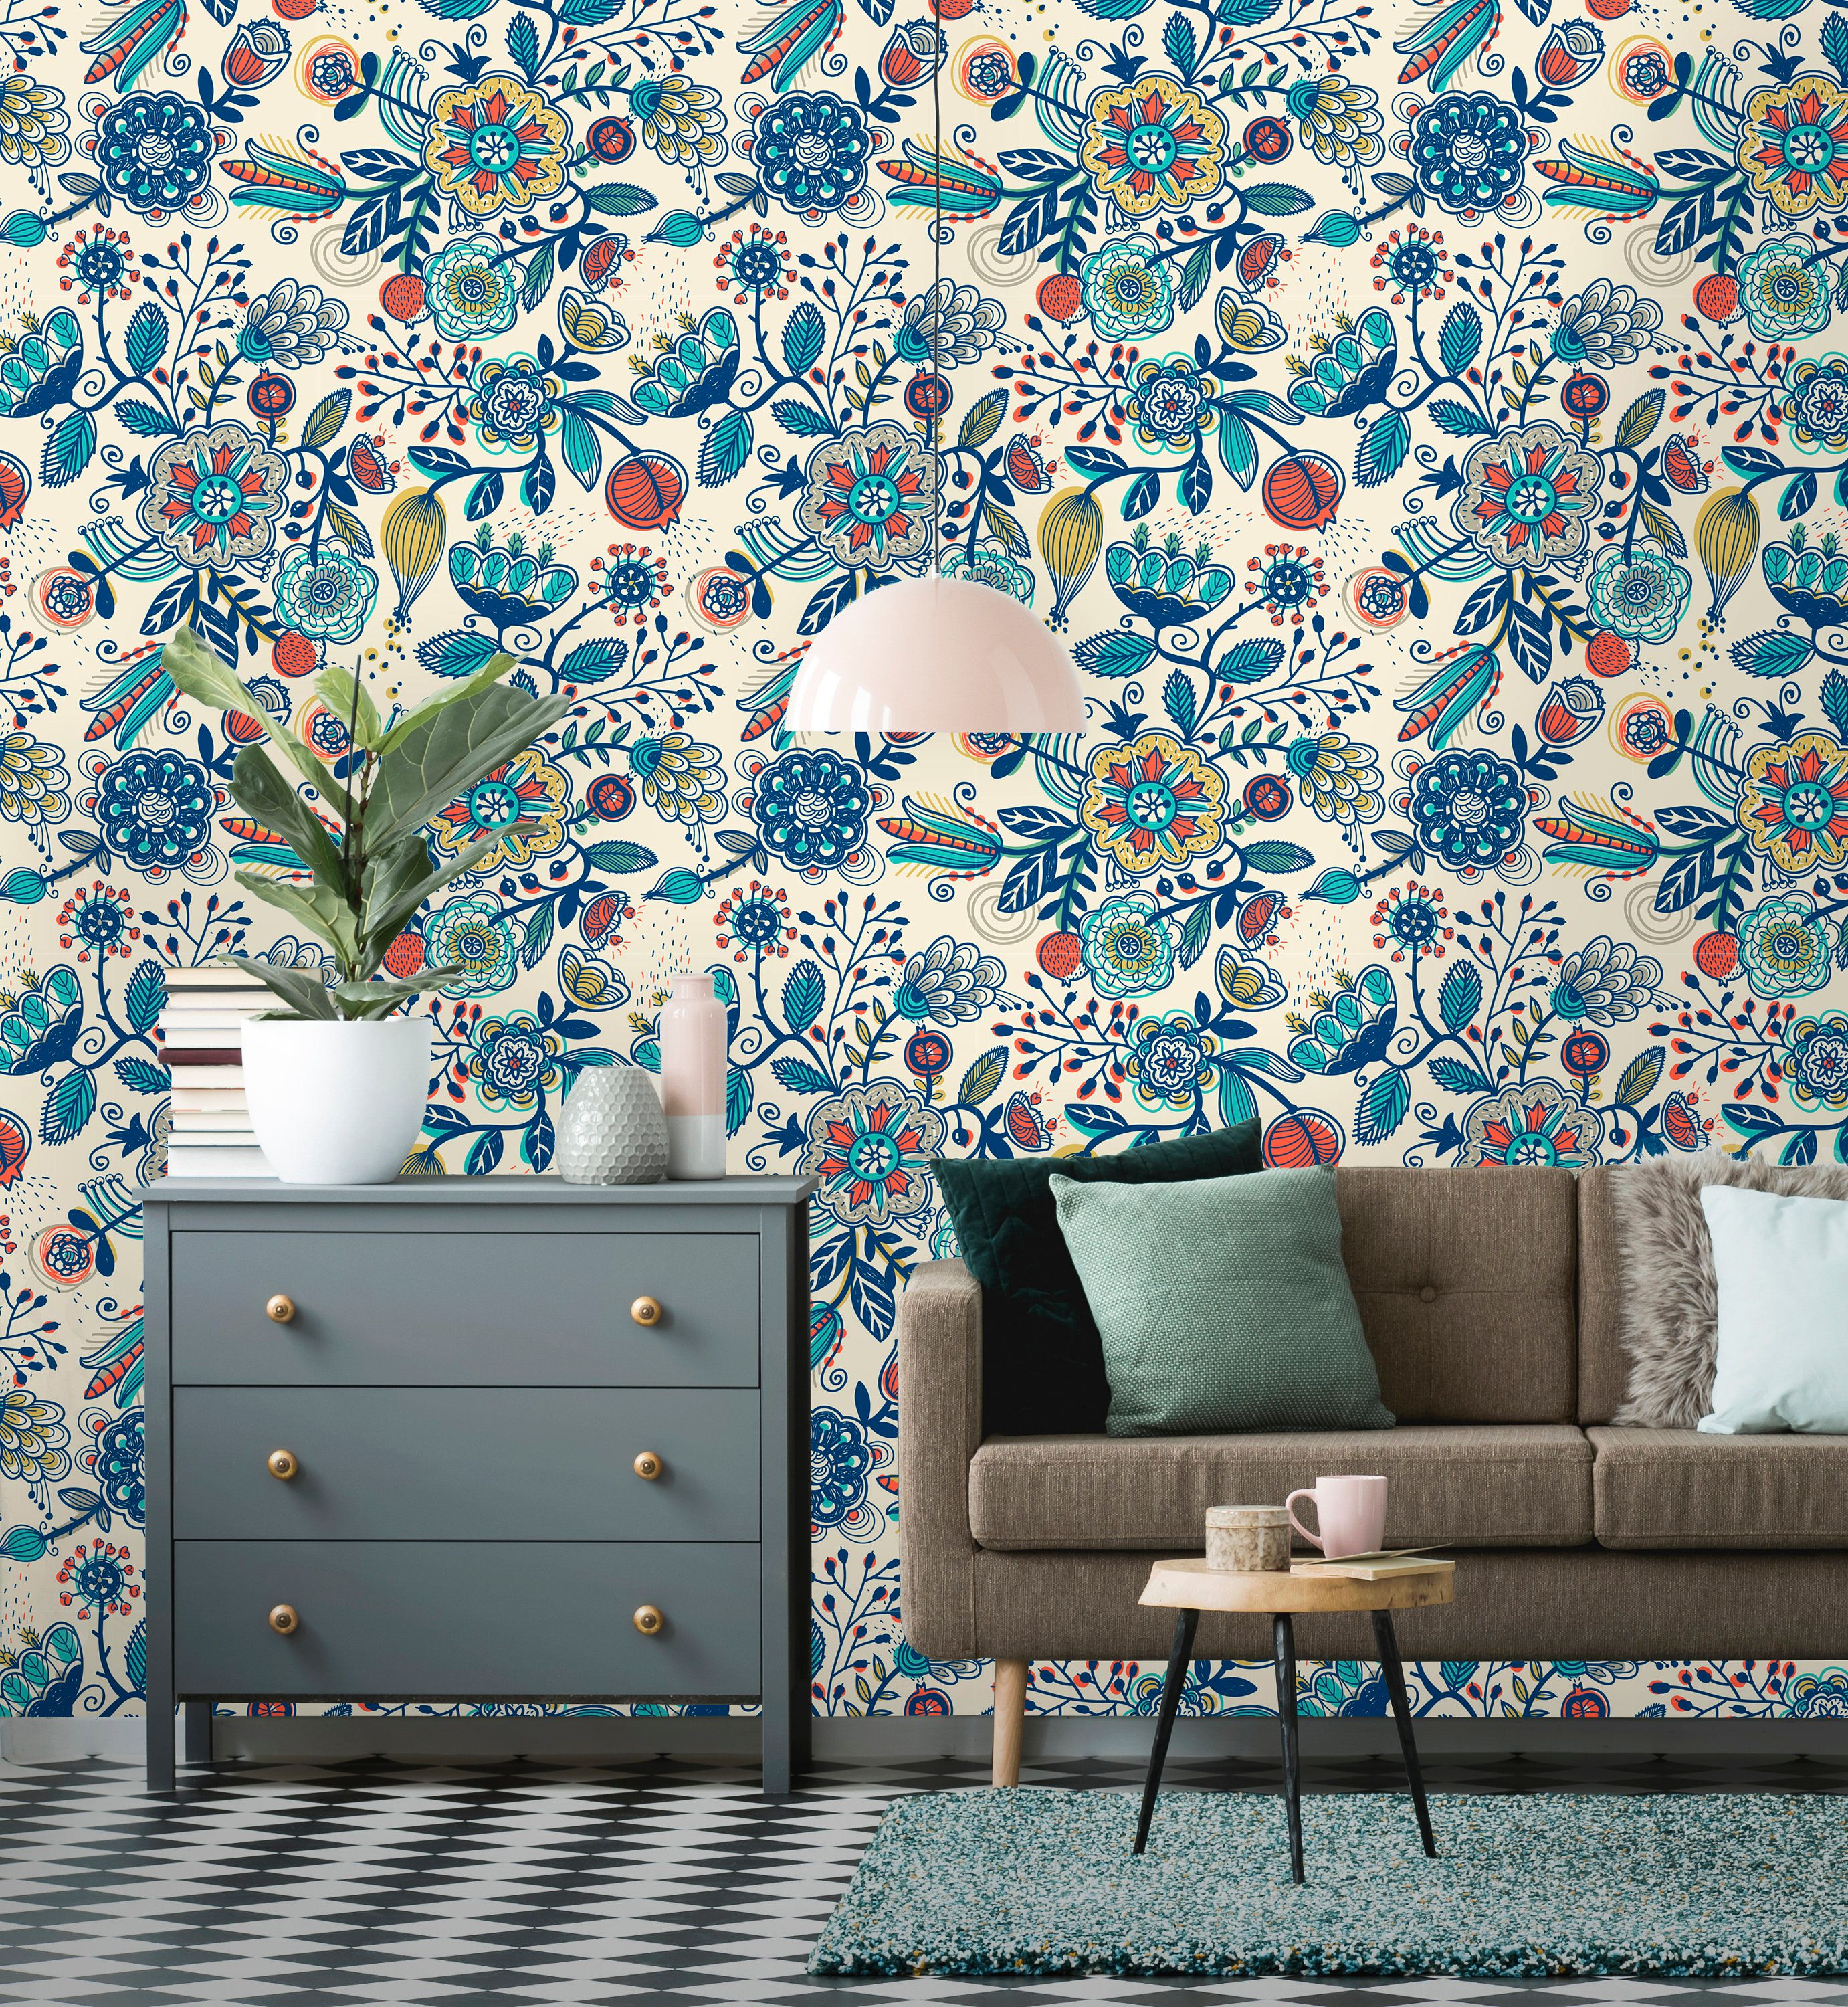 Removable Wallpaper Peel And Stick Floral Pattern Boho Etsy In 2021 Removable Wallpaper Boho Wallpaper Home Wallpaper